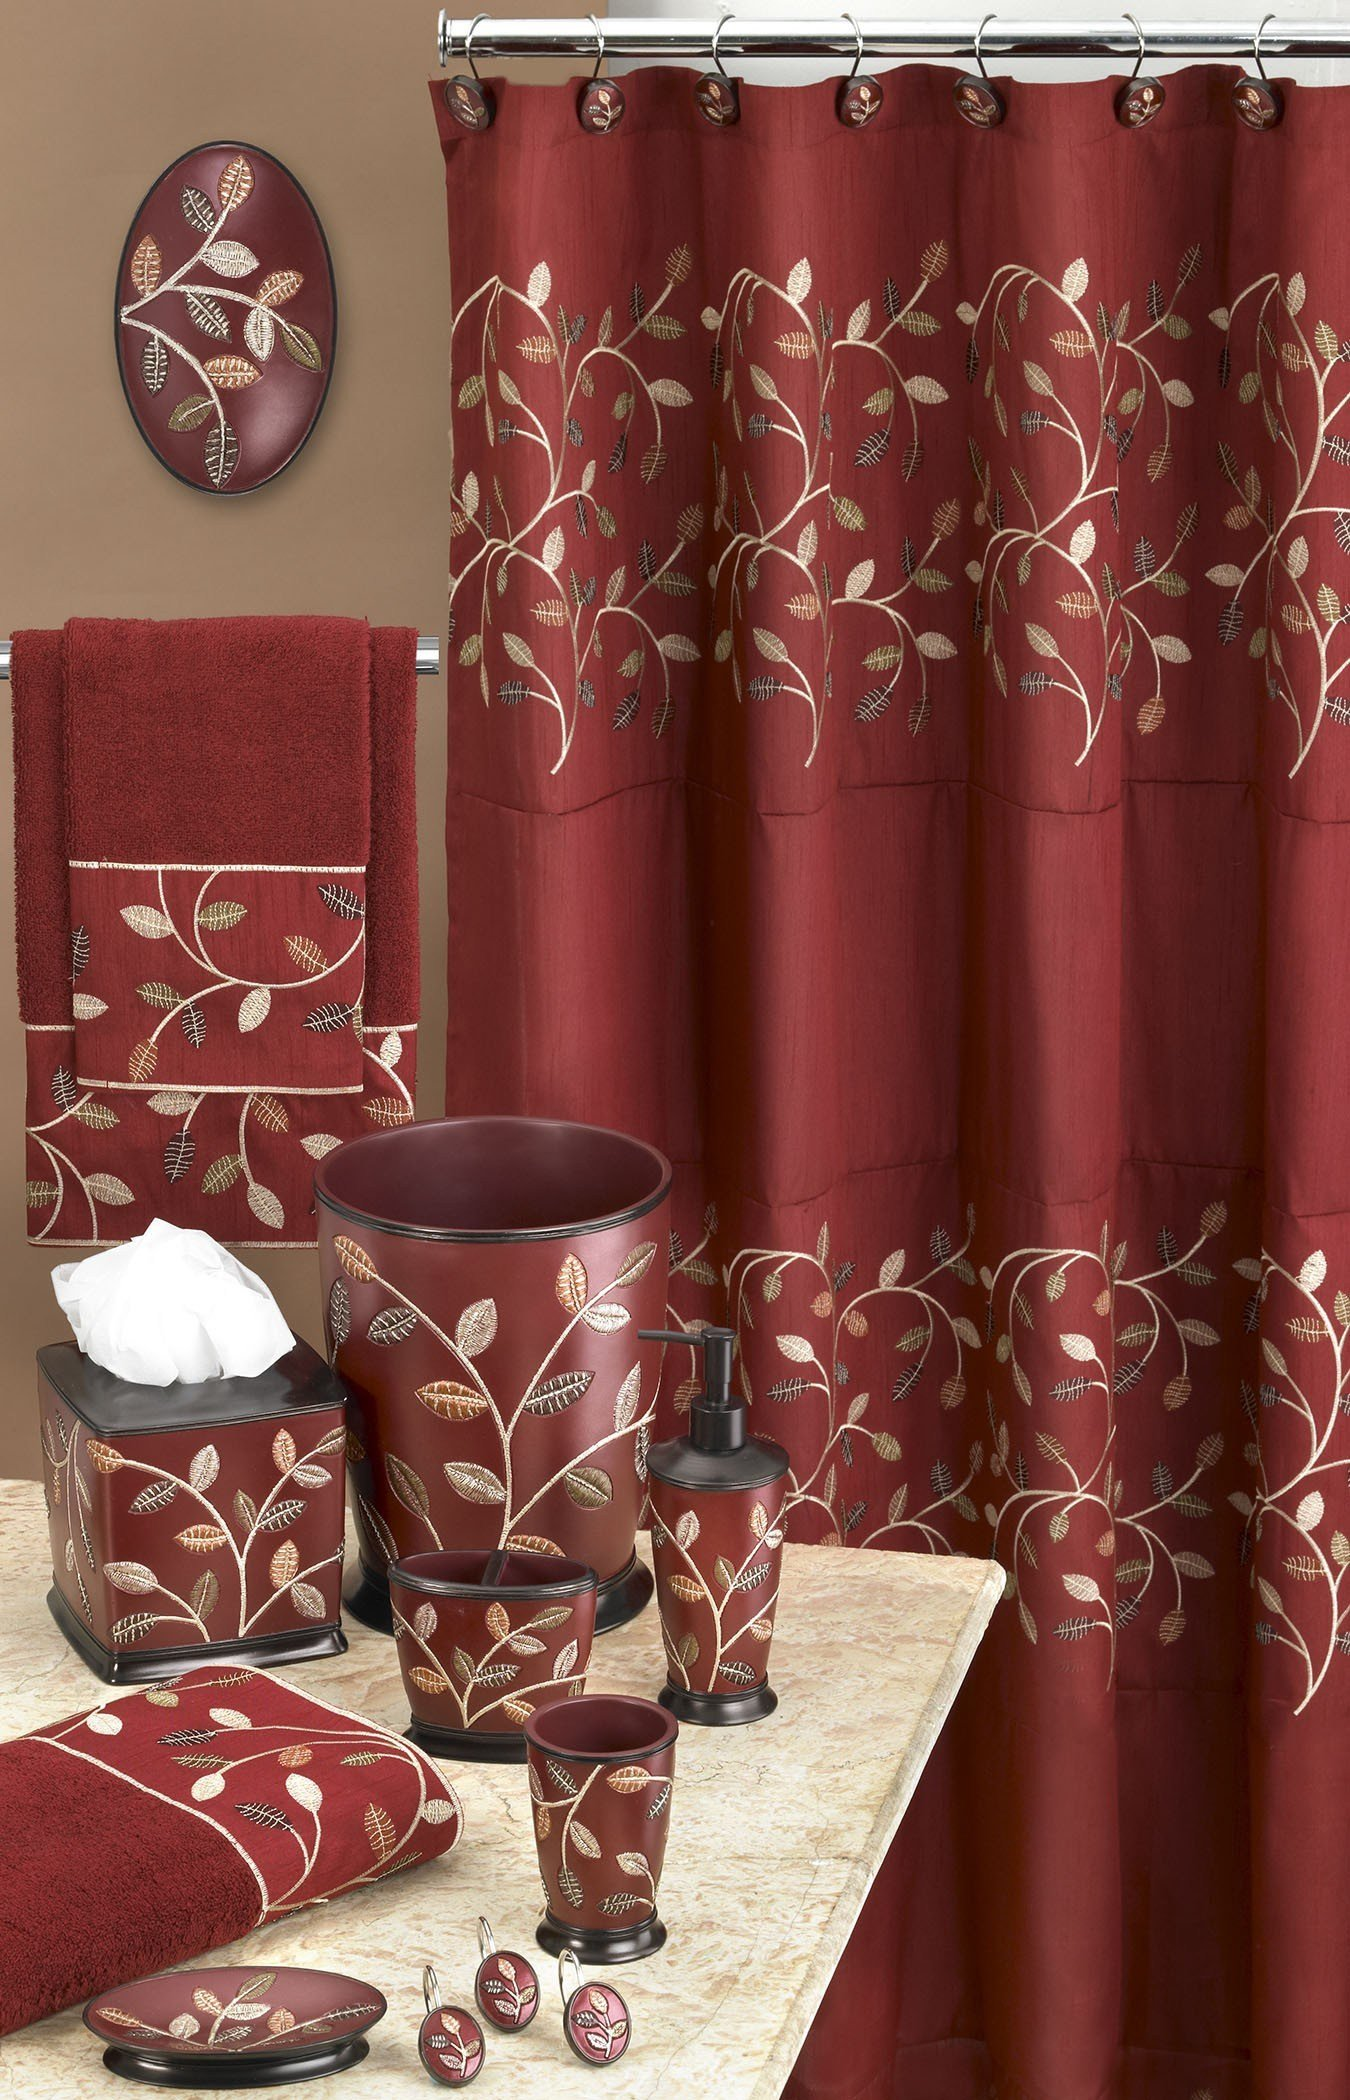 Red and Brown Bathroom Decor Beautiful 99 Excelent Red and Brown Bathroom Accessories Image Ideas